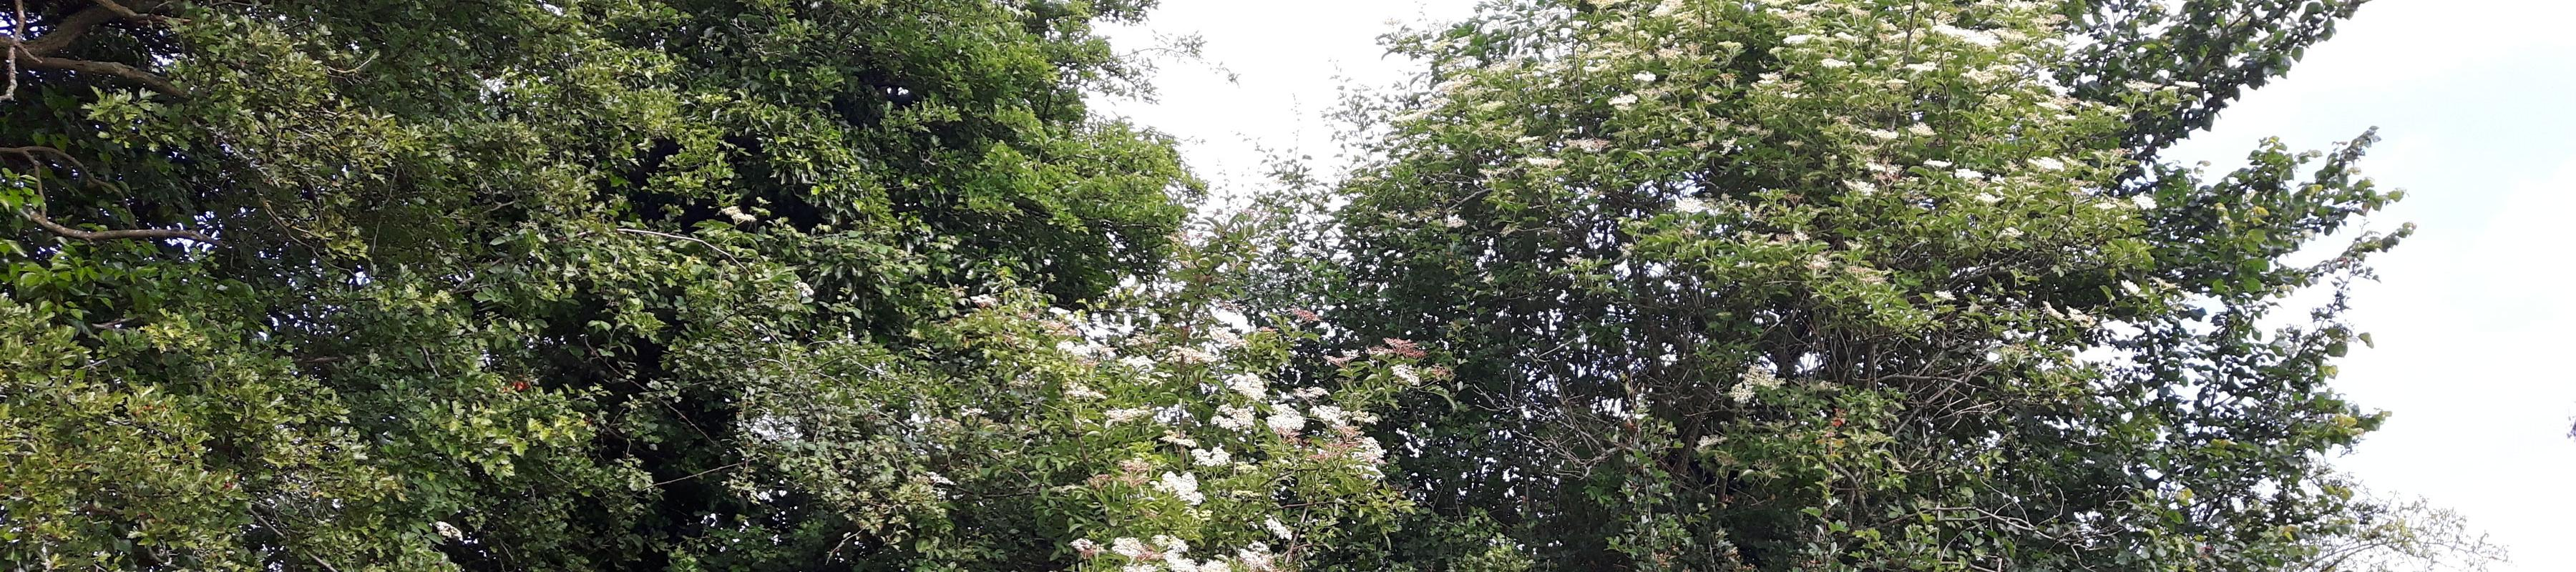 Elder trees in bloom